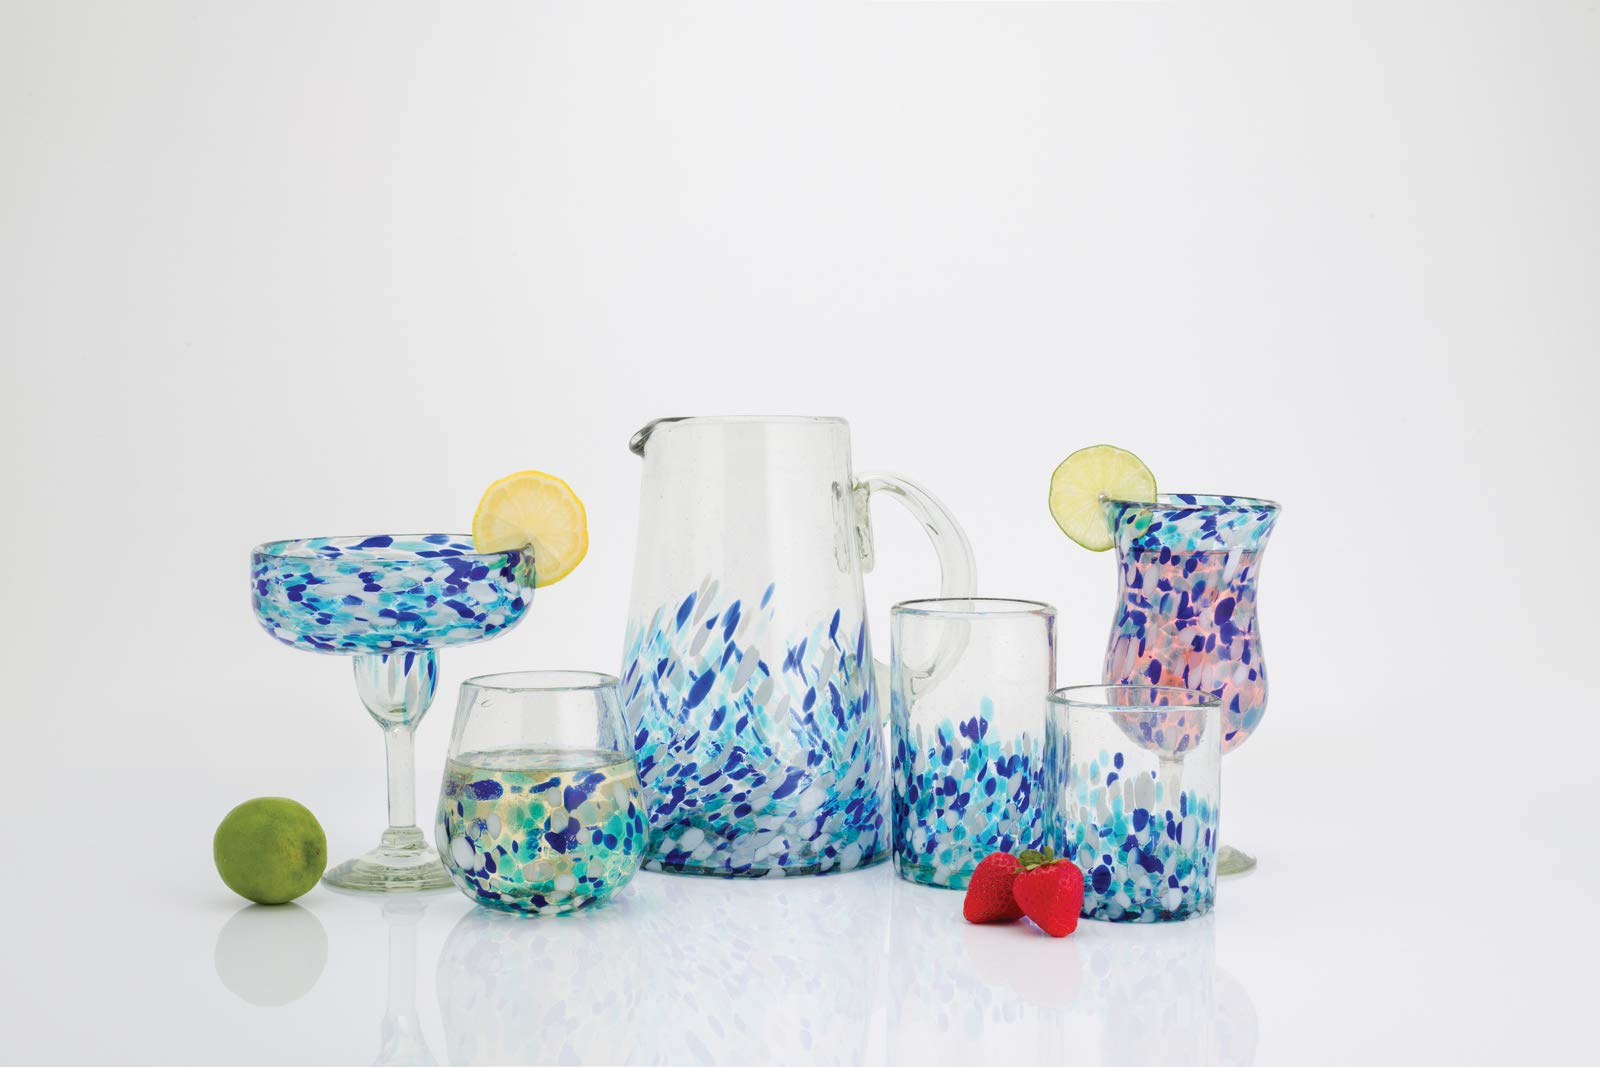 Amici Home 7MCR873S4R Bahia Hurricane Drinking Glass 16 Fluid Ounces Blue and White Ombre